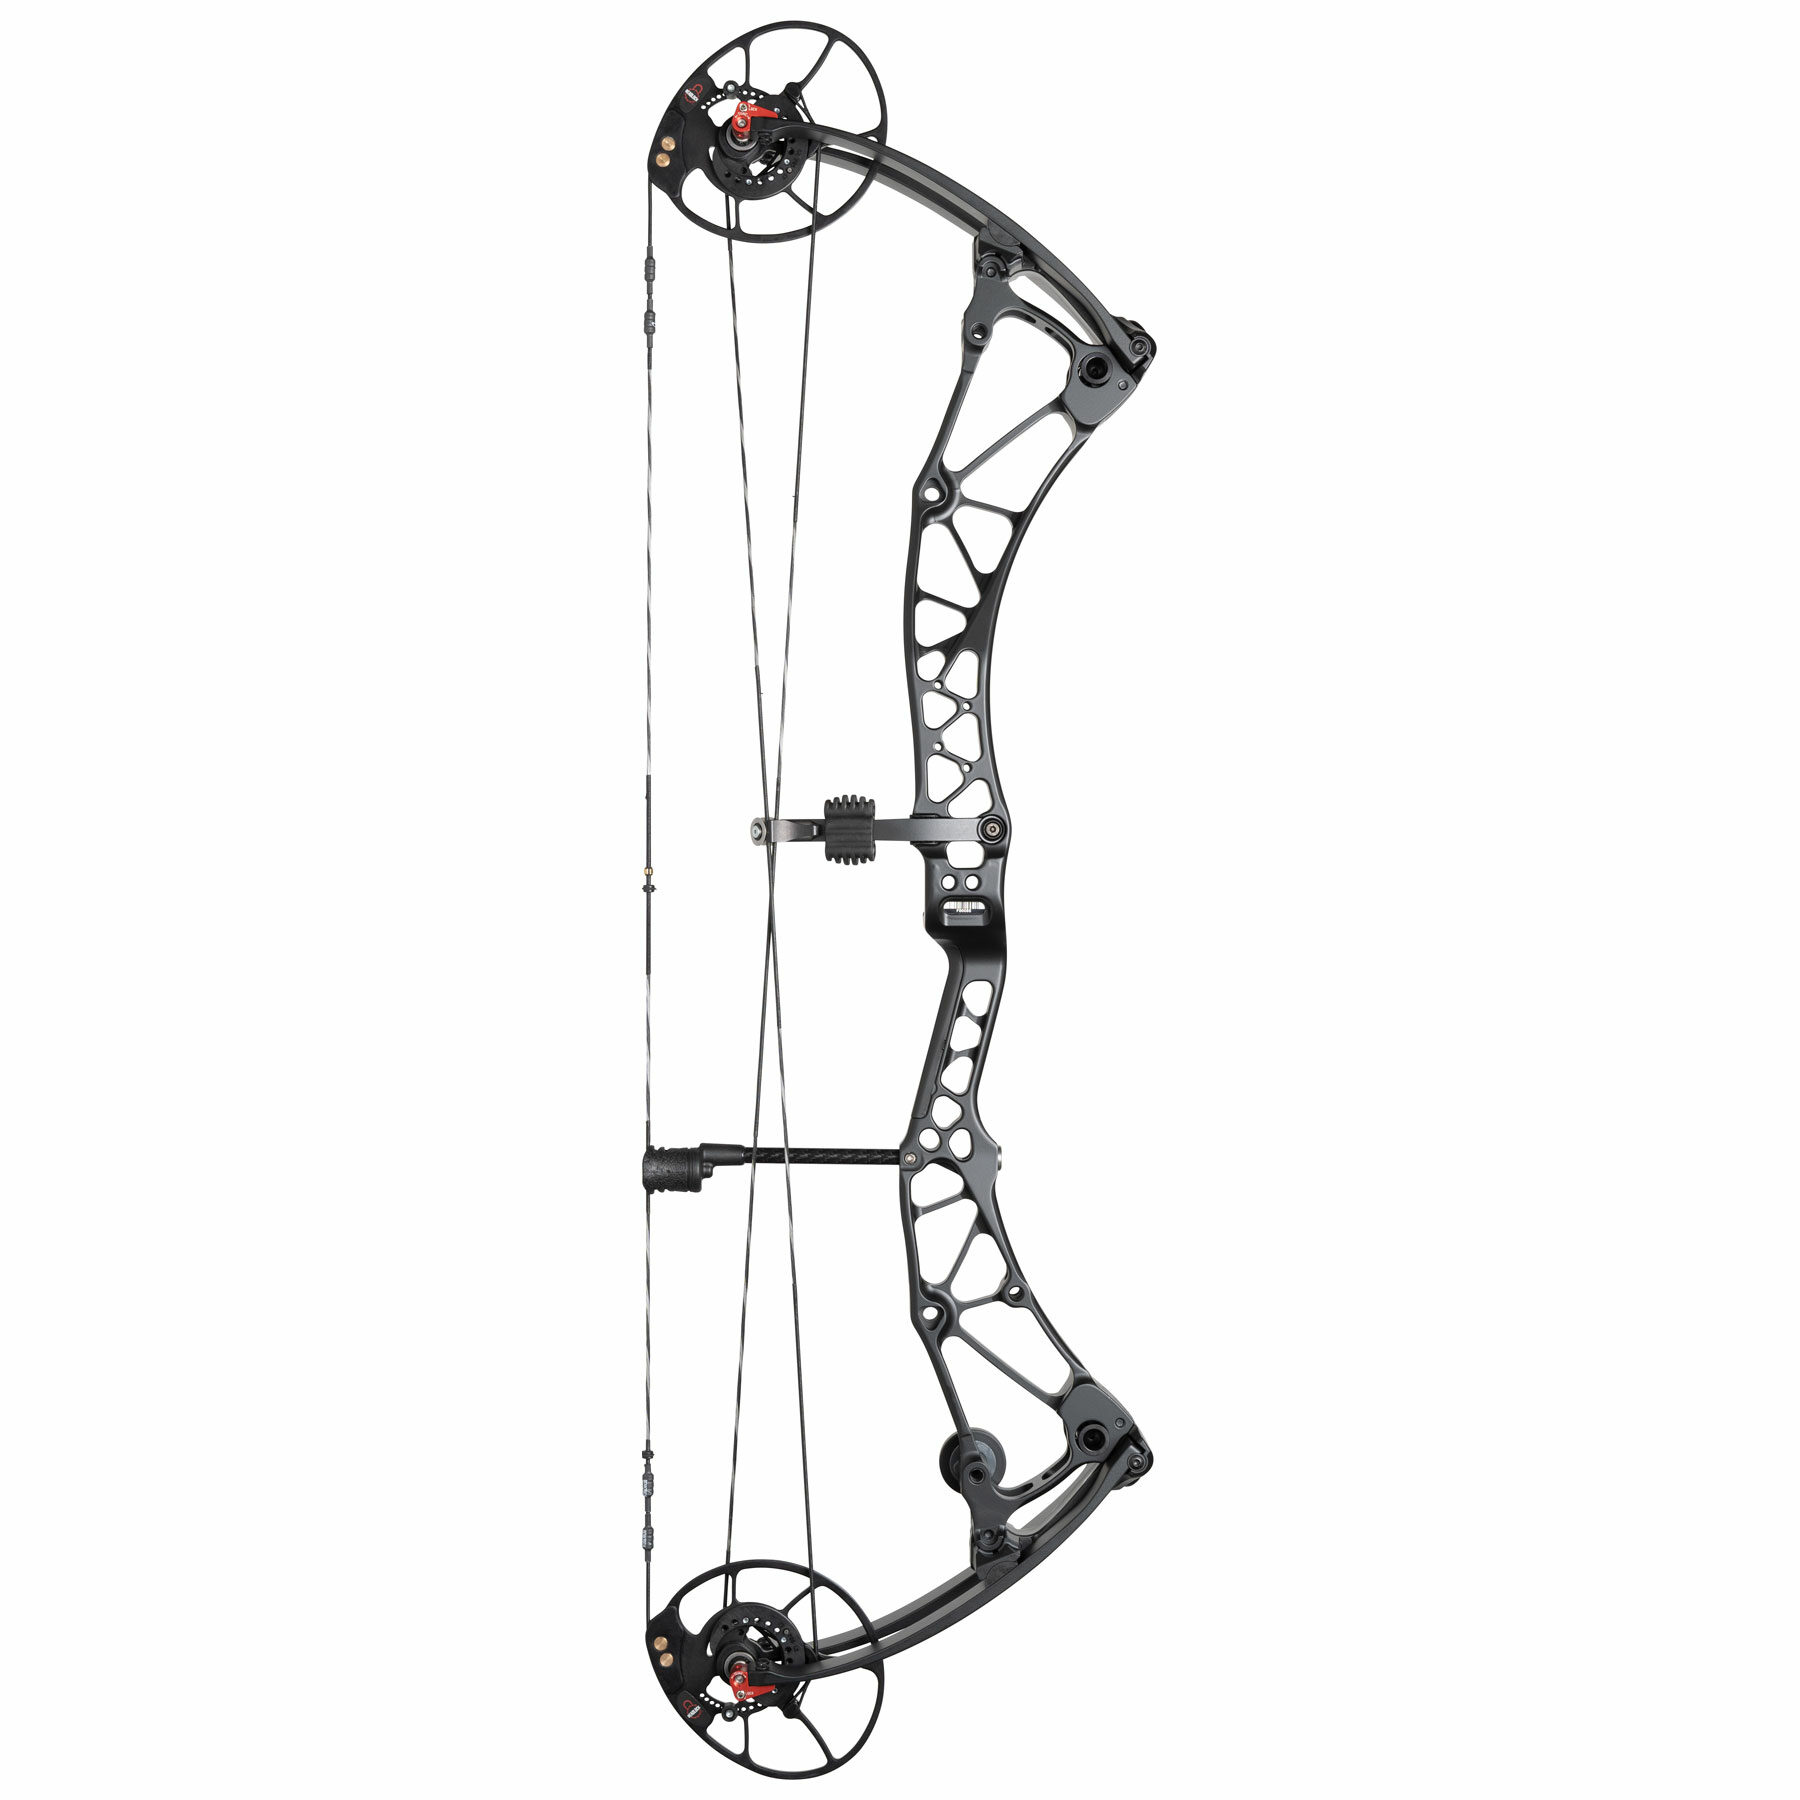 Revolt X black archery compound bow